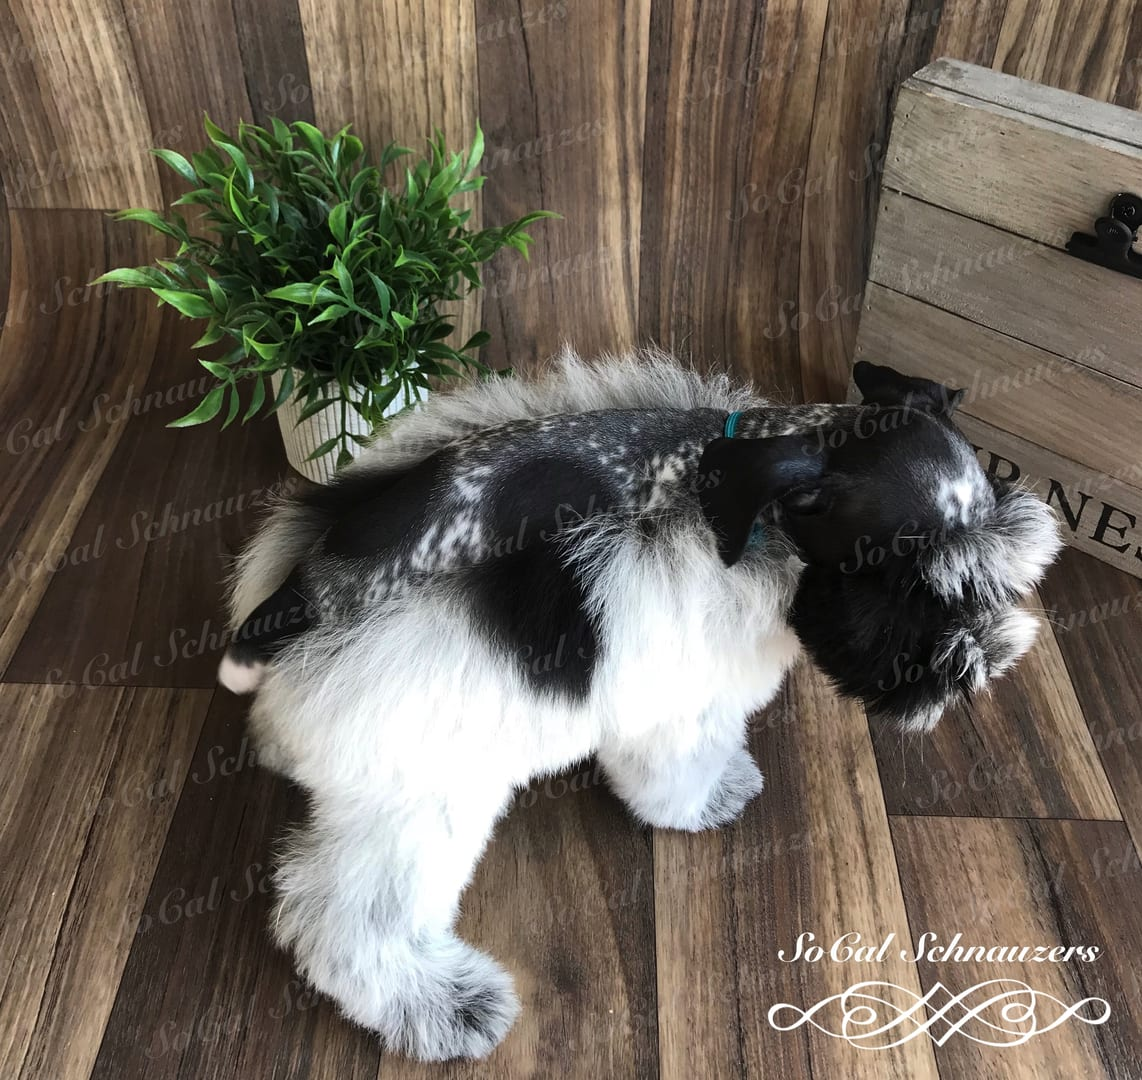 Black and white patterned schnauzer with small houseplant